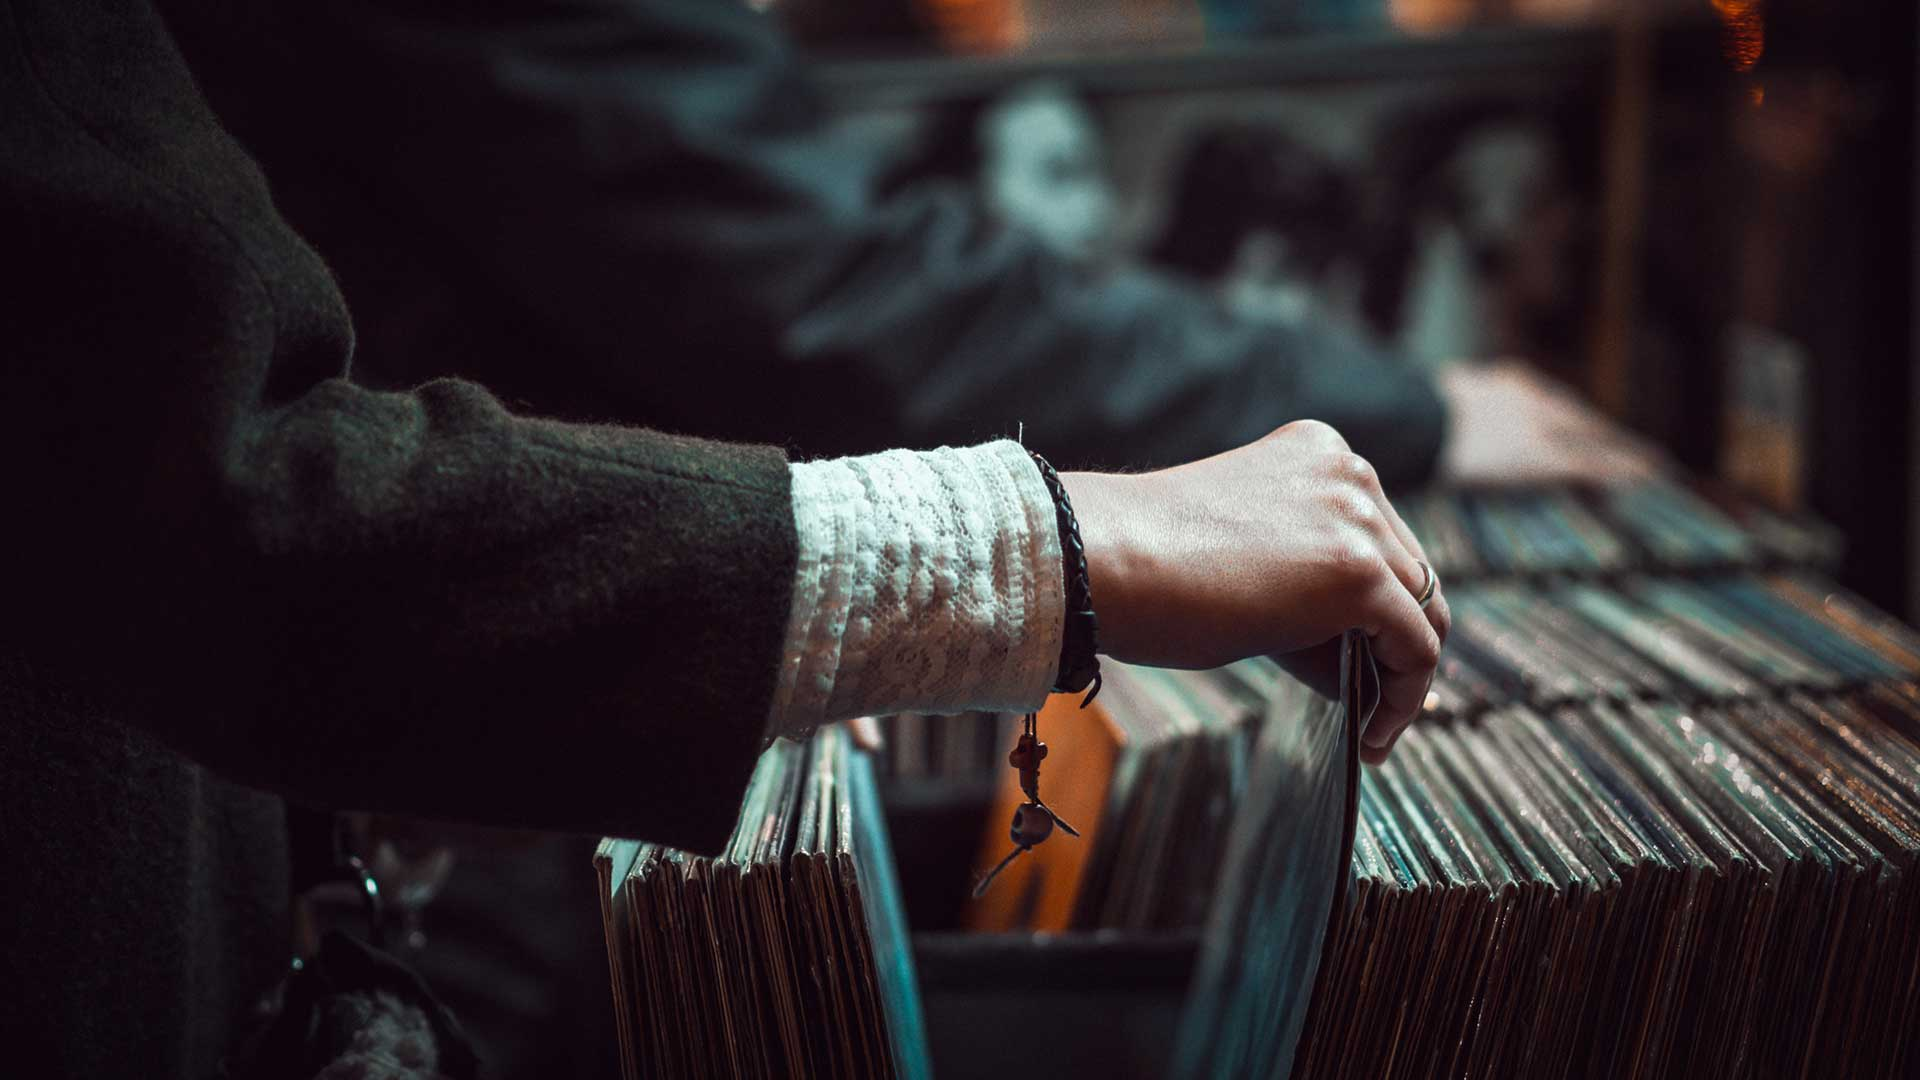 a hand browsing through records for sale